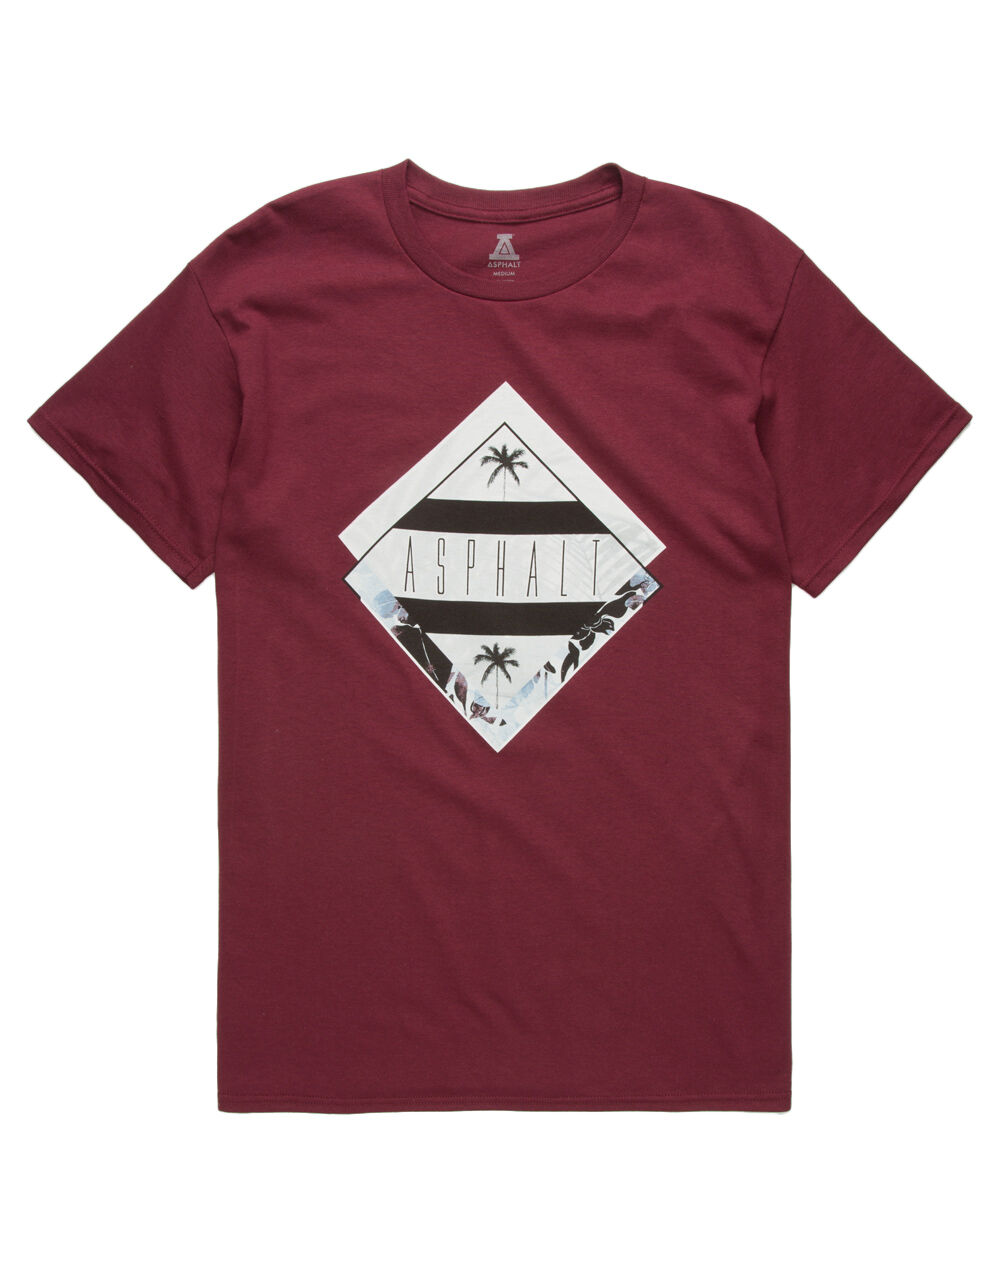 Image of ASPHALT CRISP DIAMOND T-SHIRT